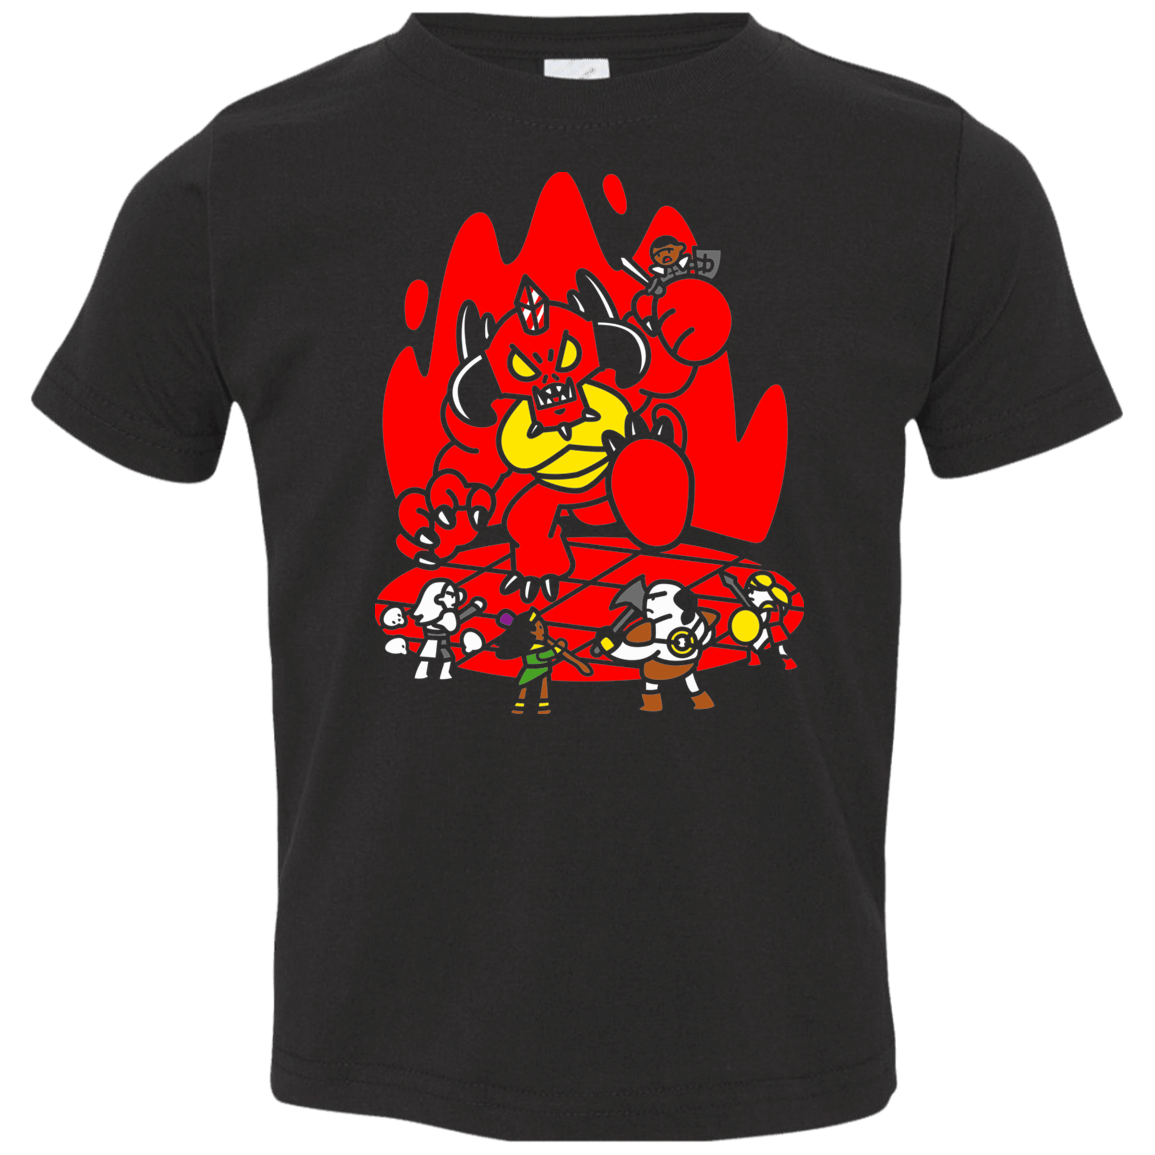 T-Shirts Black / 2T Chibi Battle Diablo Toddler Premium T-Shirt